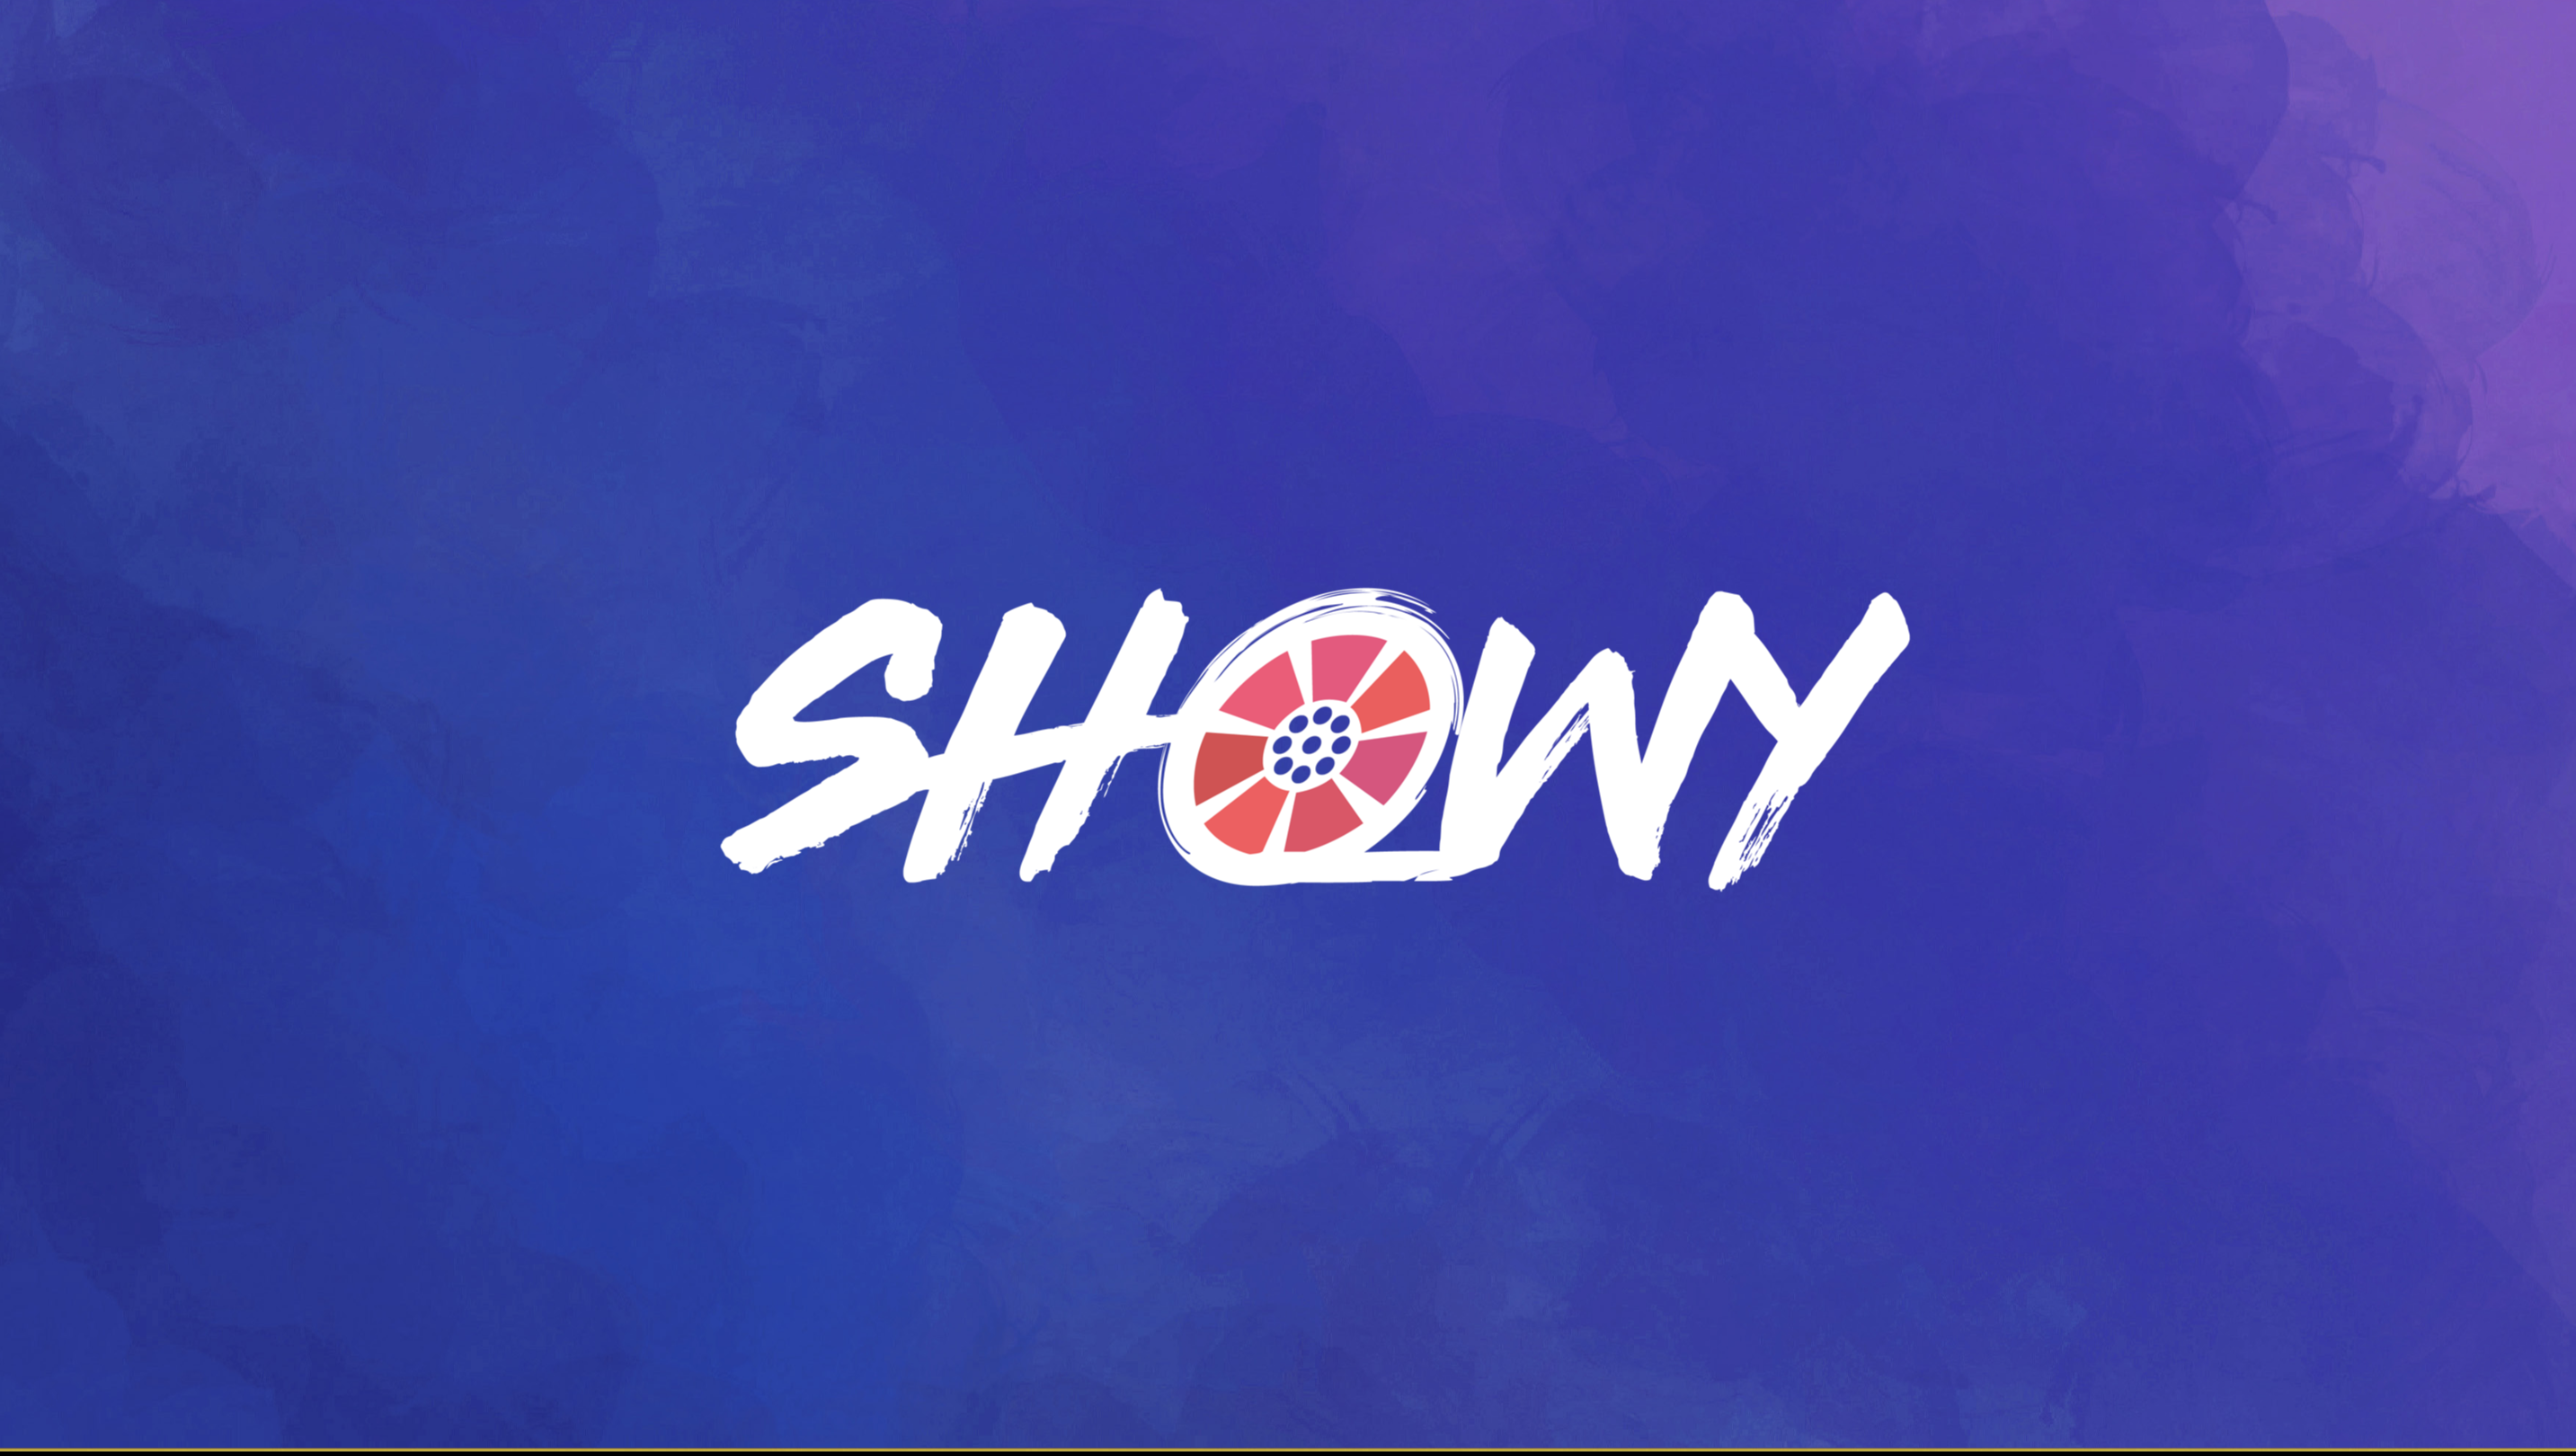 Webdesign – Showy